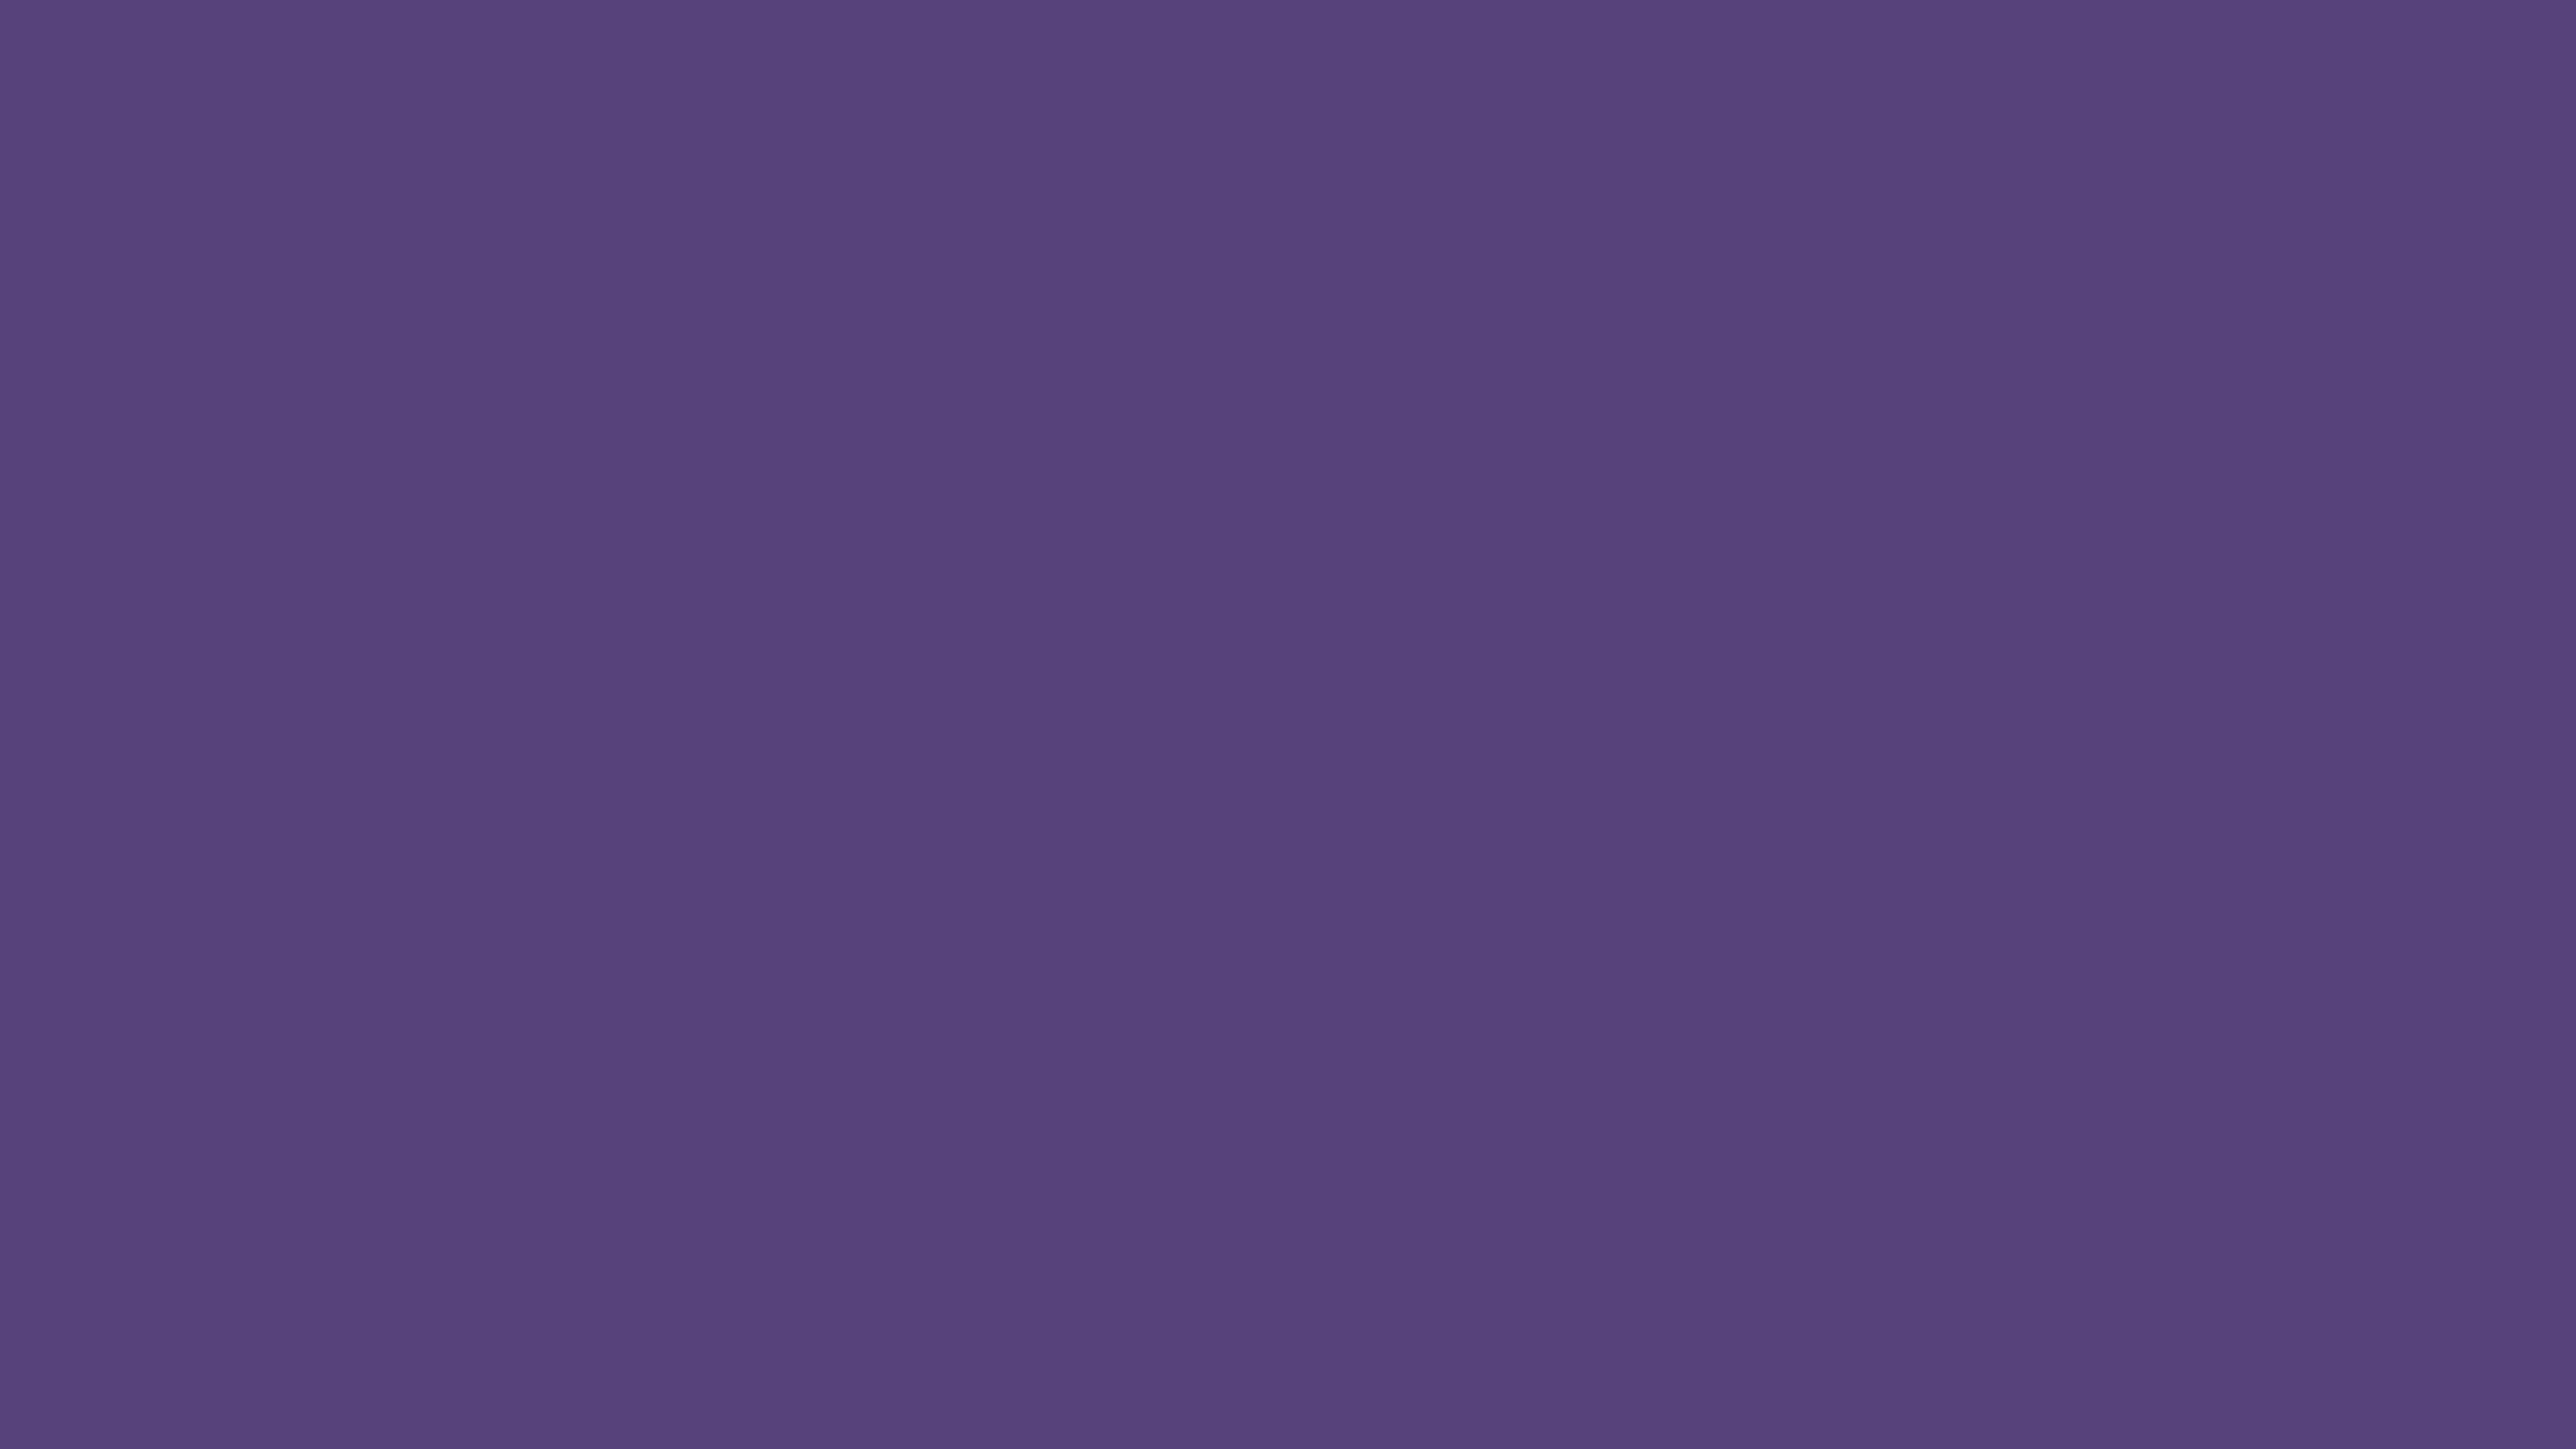 5120x2880 Cyber Grape Solid Color Background